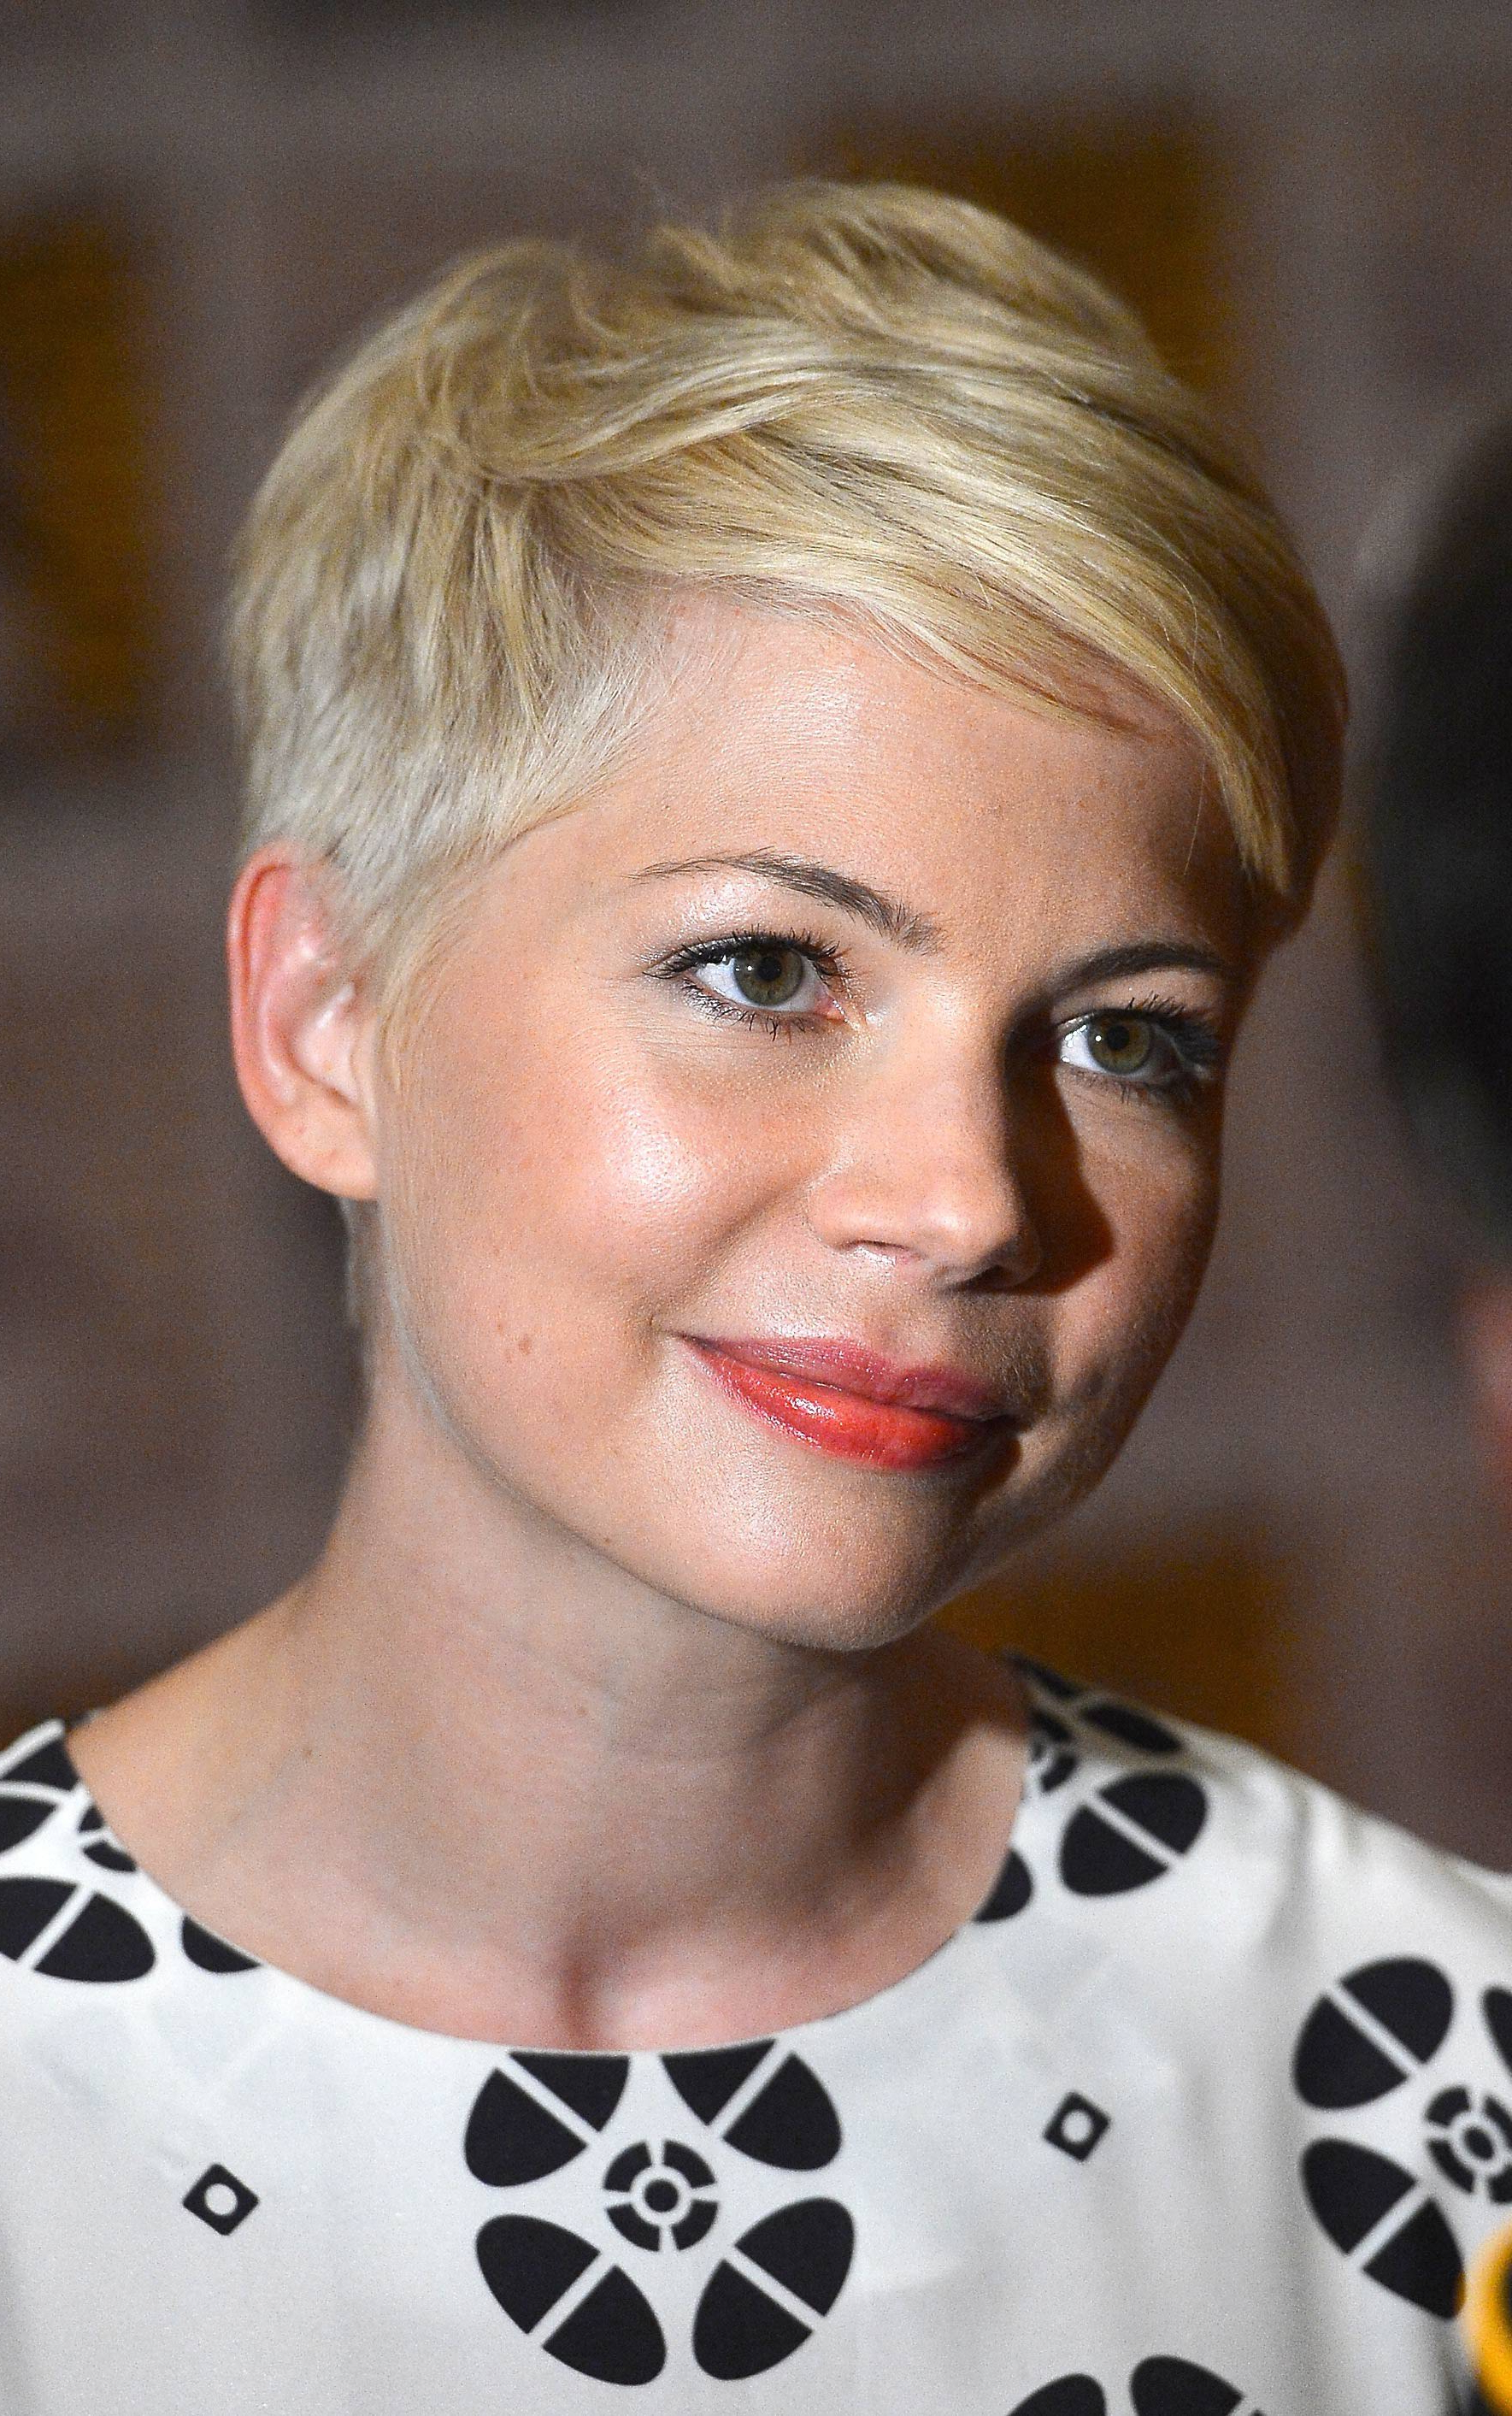 20 Best Short Haircuts For Women – The Xerxes With Short Haircuts For Square Jaws (View 3 of 25)